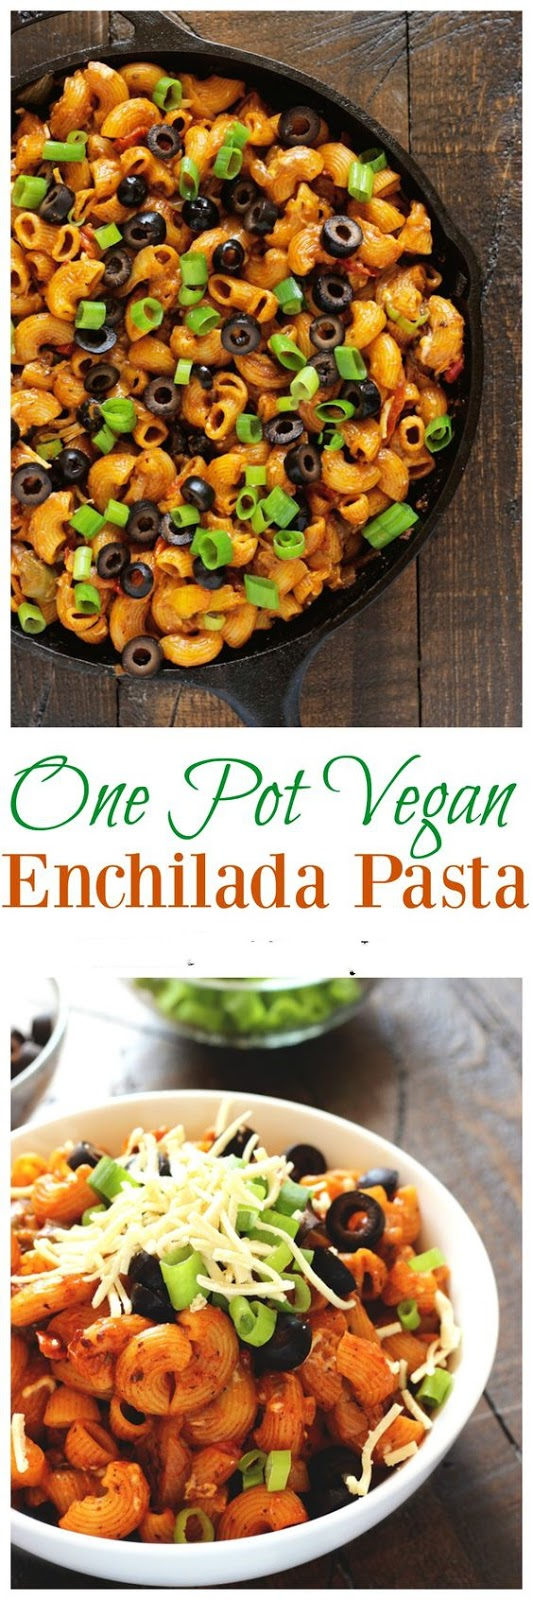 This go to weeknight dinner is perfect for wholesome, quick, and easy. The melty vegan cheese, vegetables, and comfort of pasta are ready to eat in less than 20 minutes.